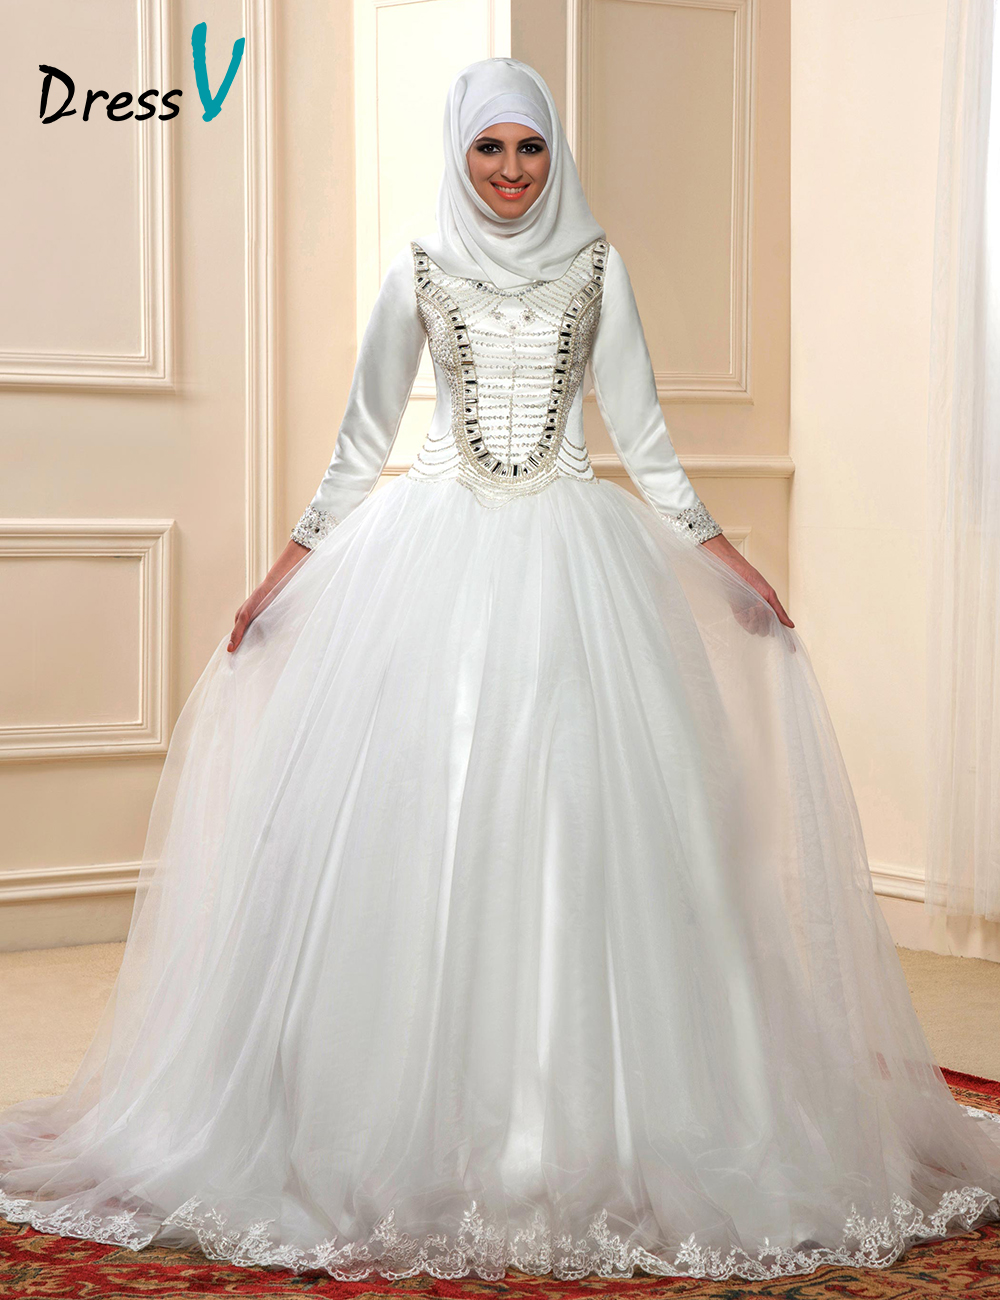 2016 luxury muslim ball gown wedding dresses with long for Luxury ball gown wedding dresses